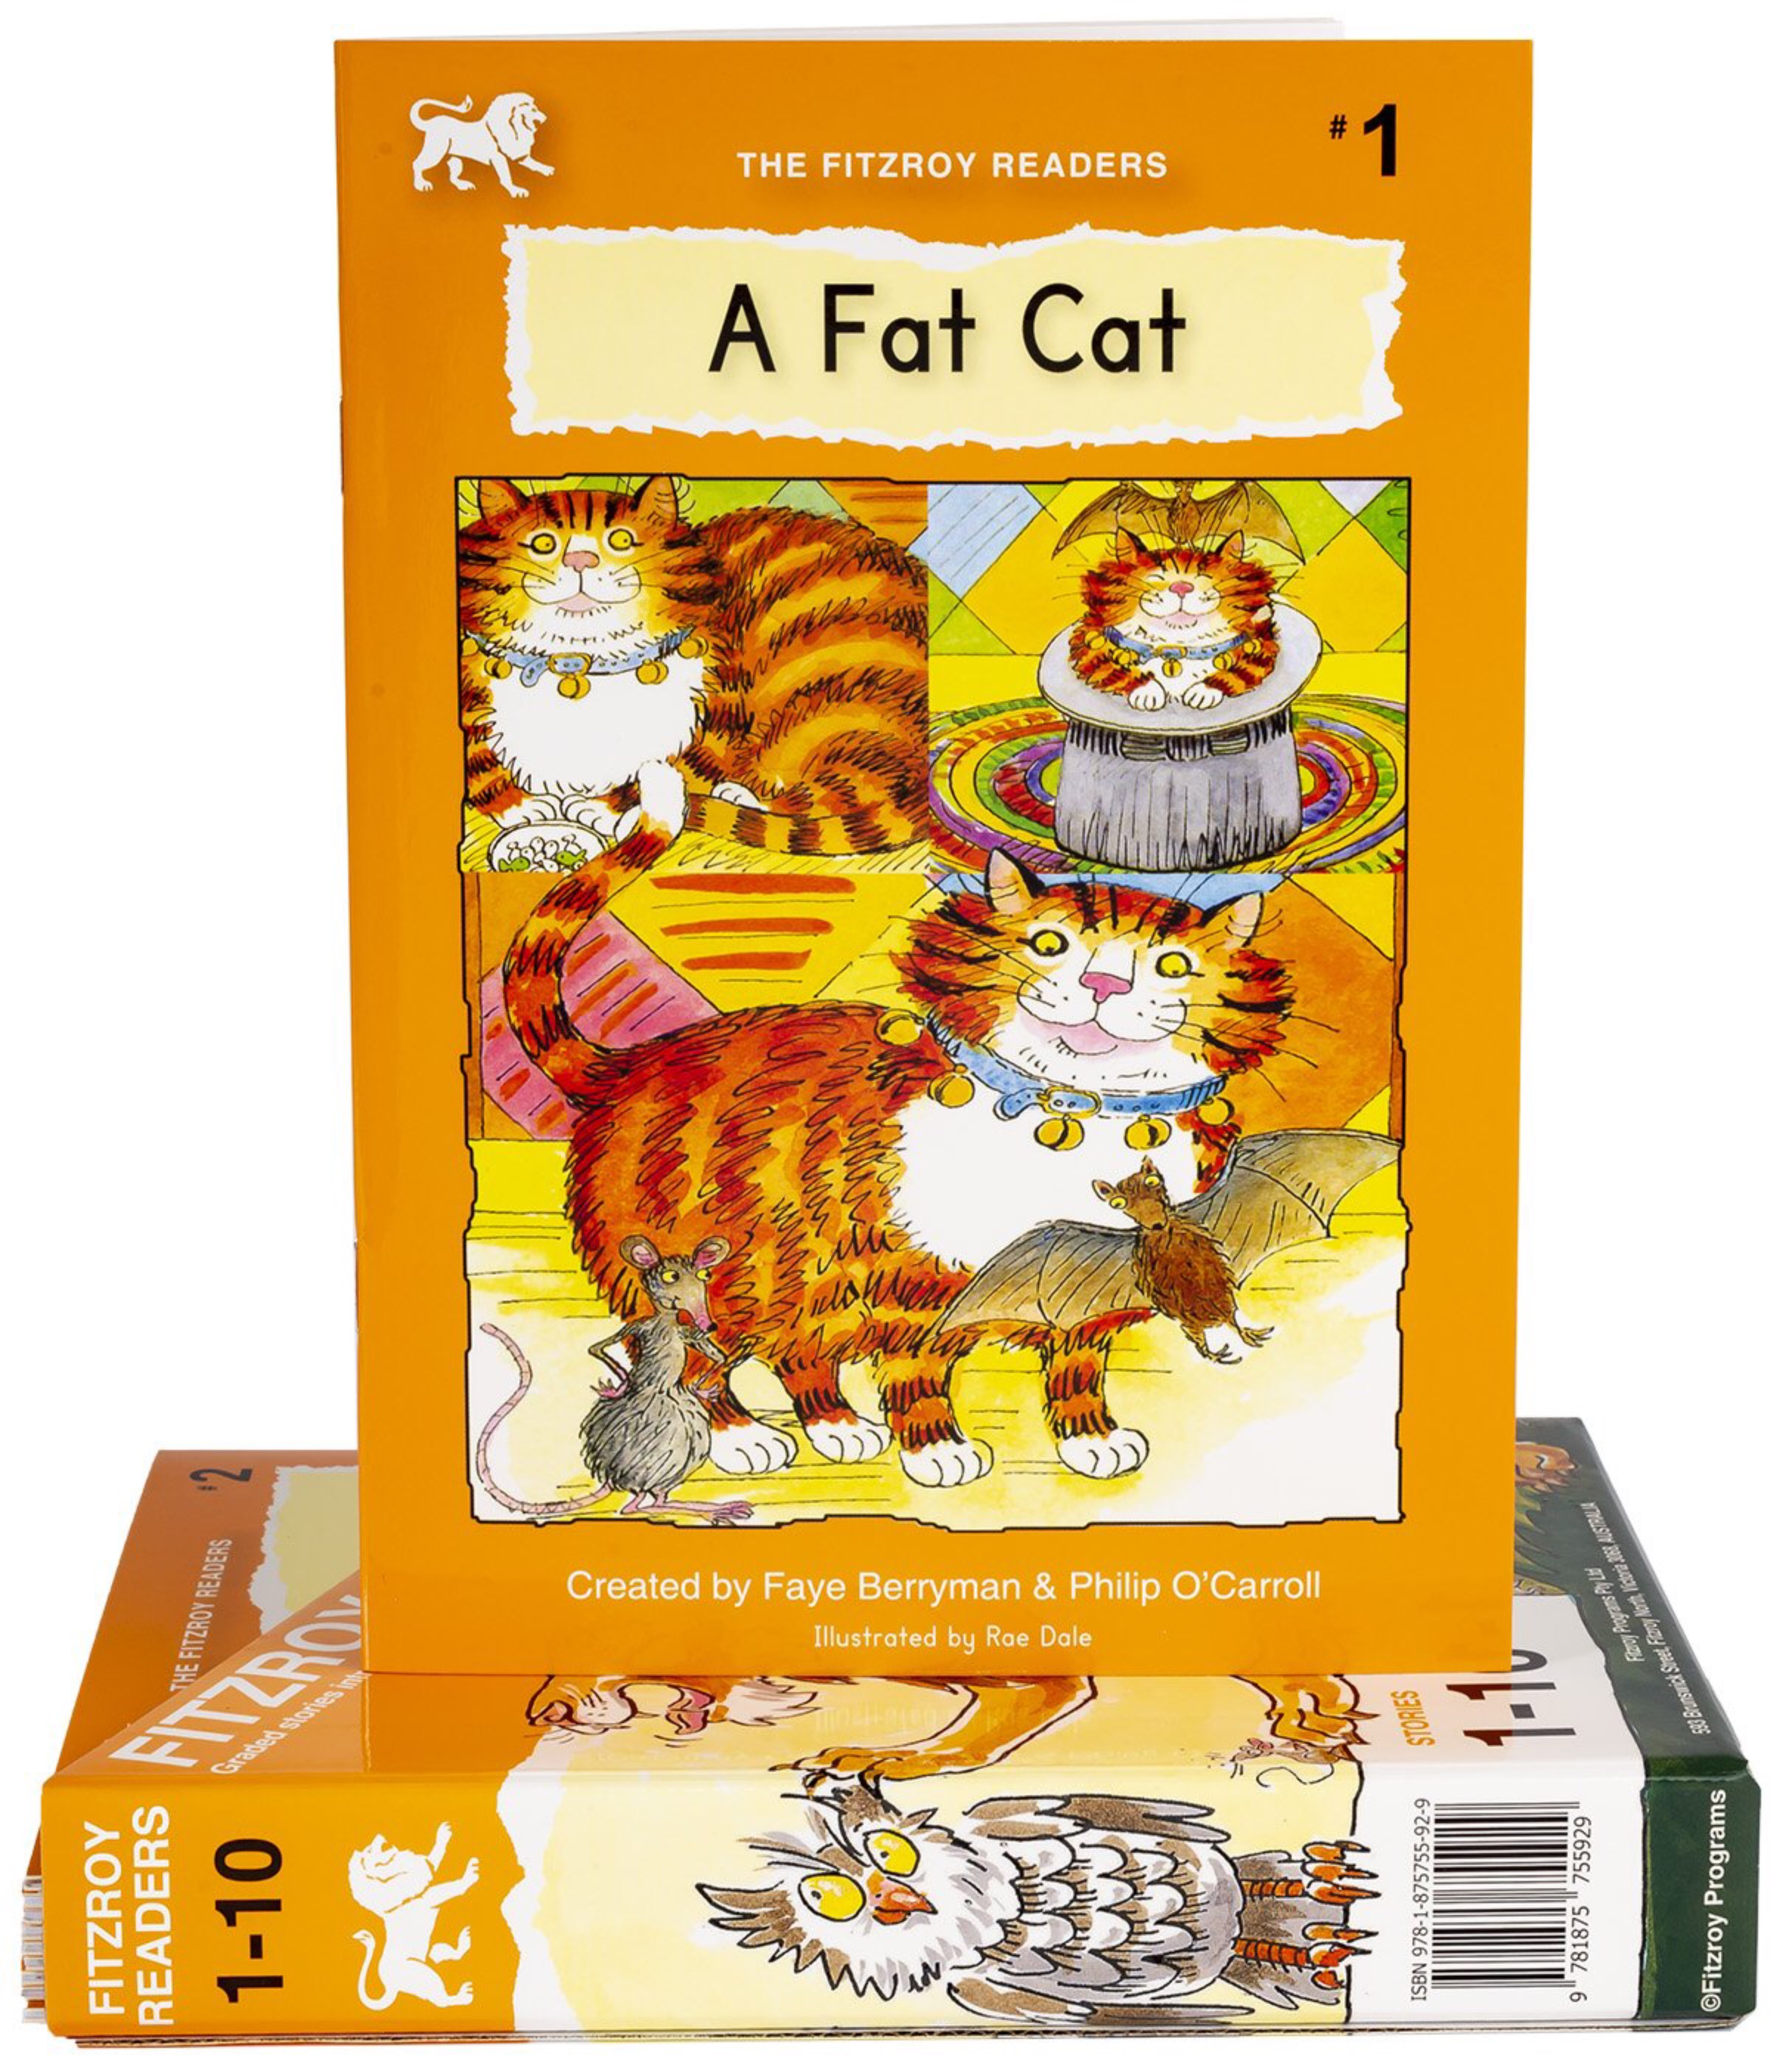 Decodable Readers - Fitzroy Readers - Full Set- Decodable Readers, Australian authors